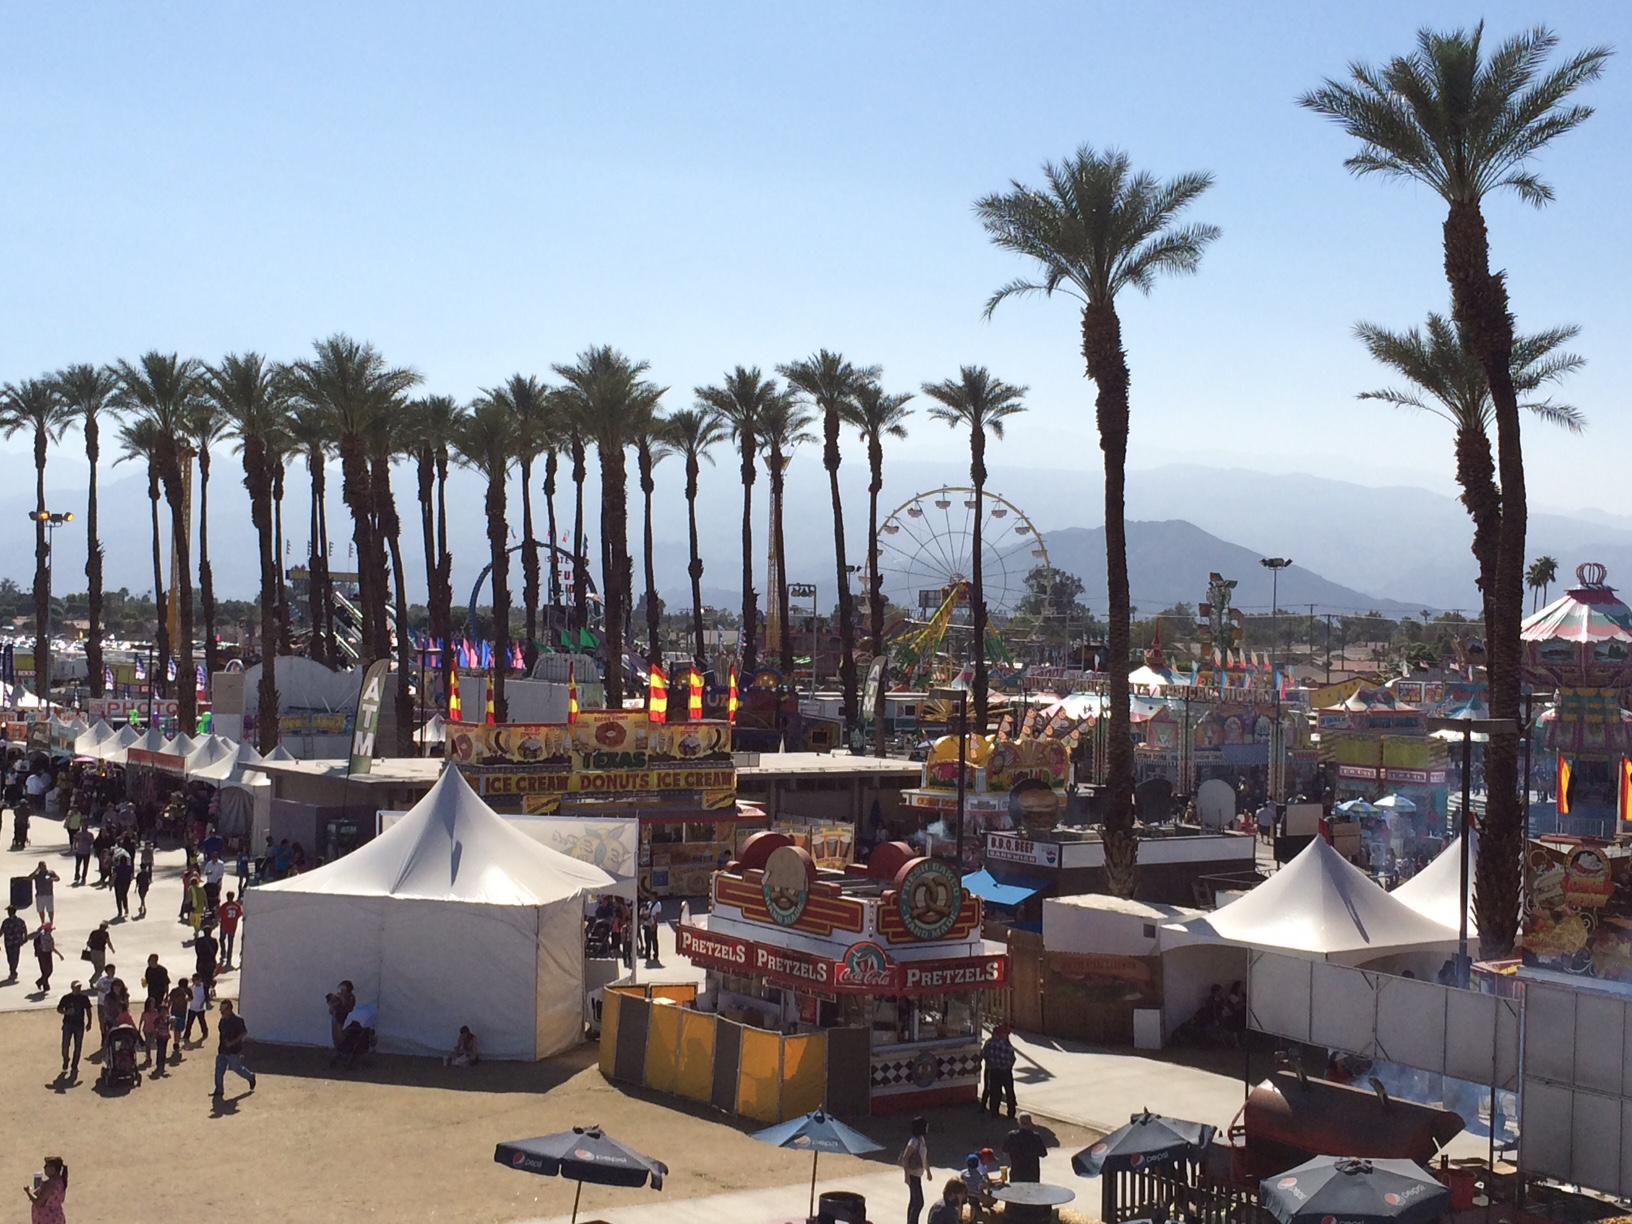 Riverside, California County Fairg